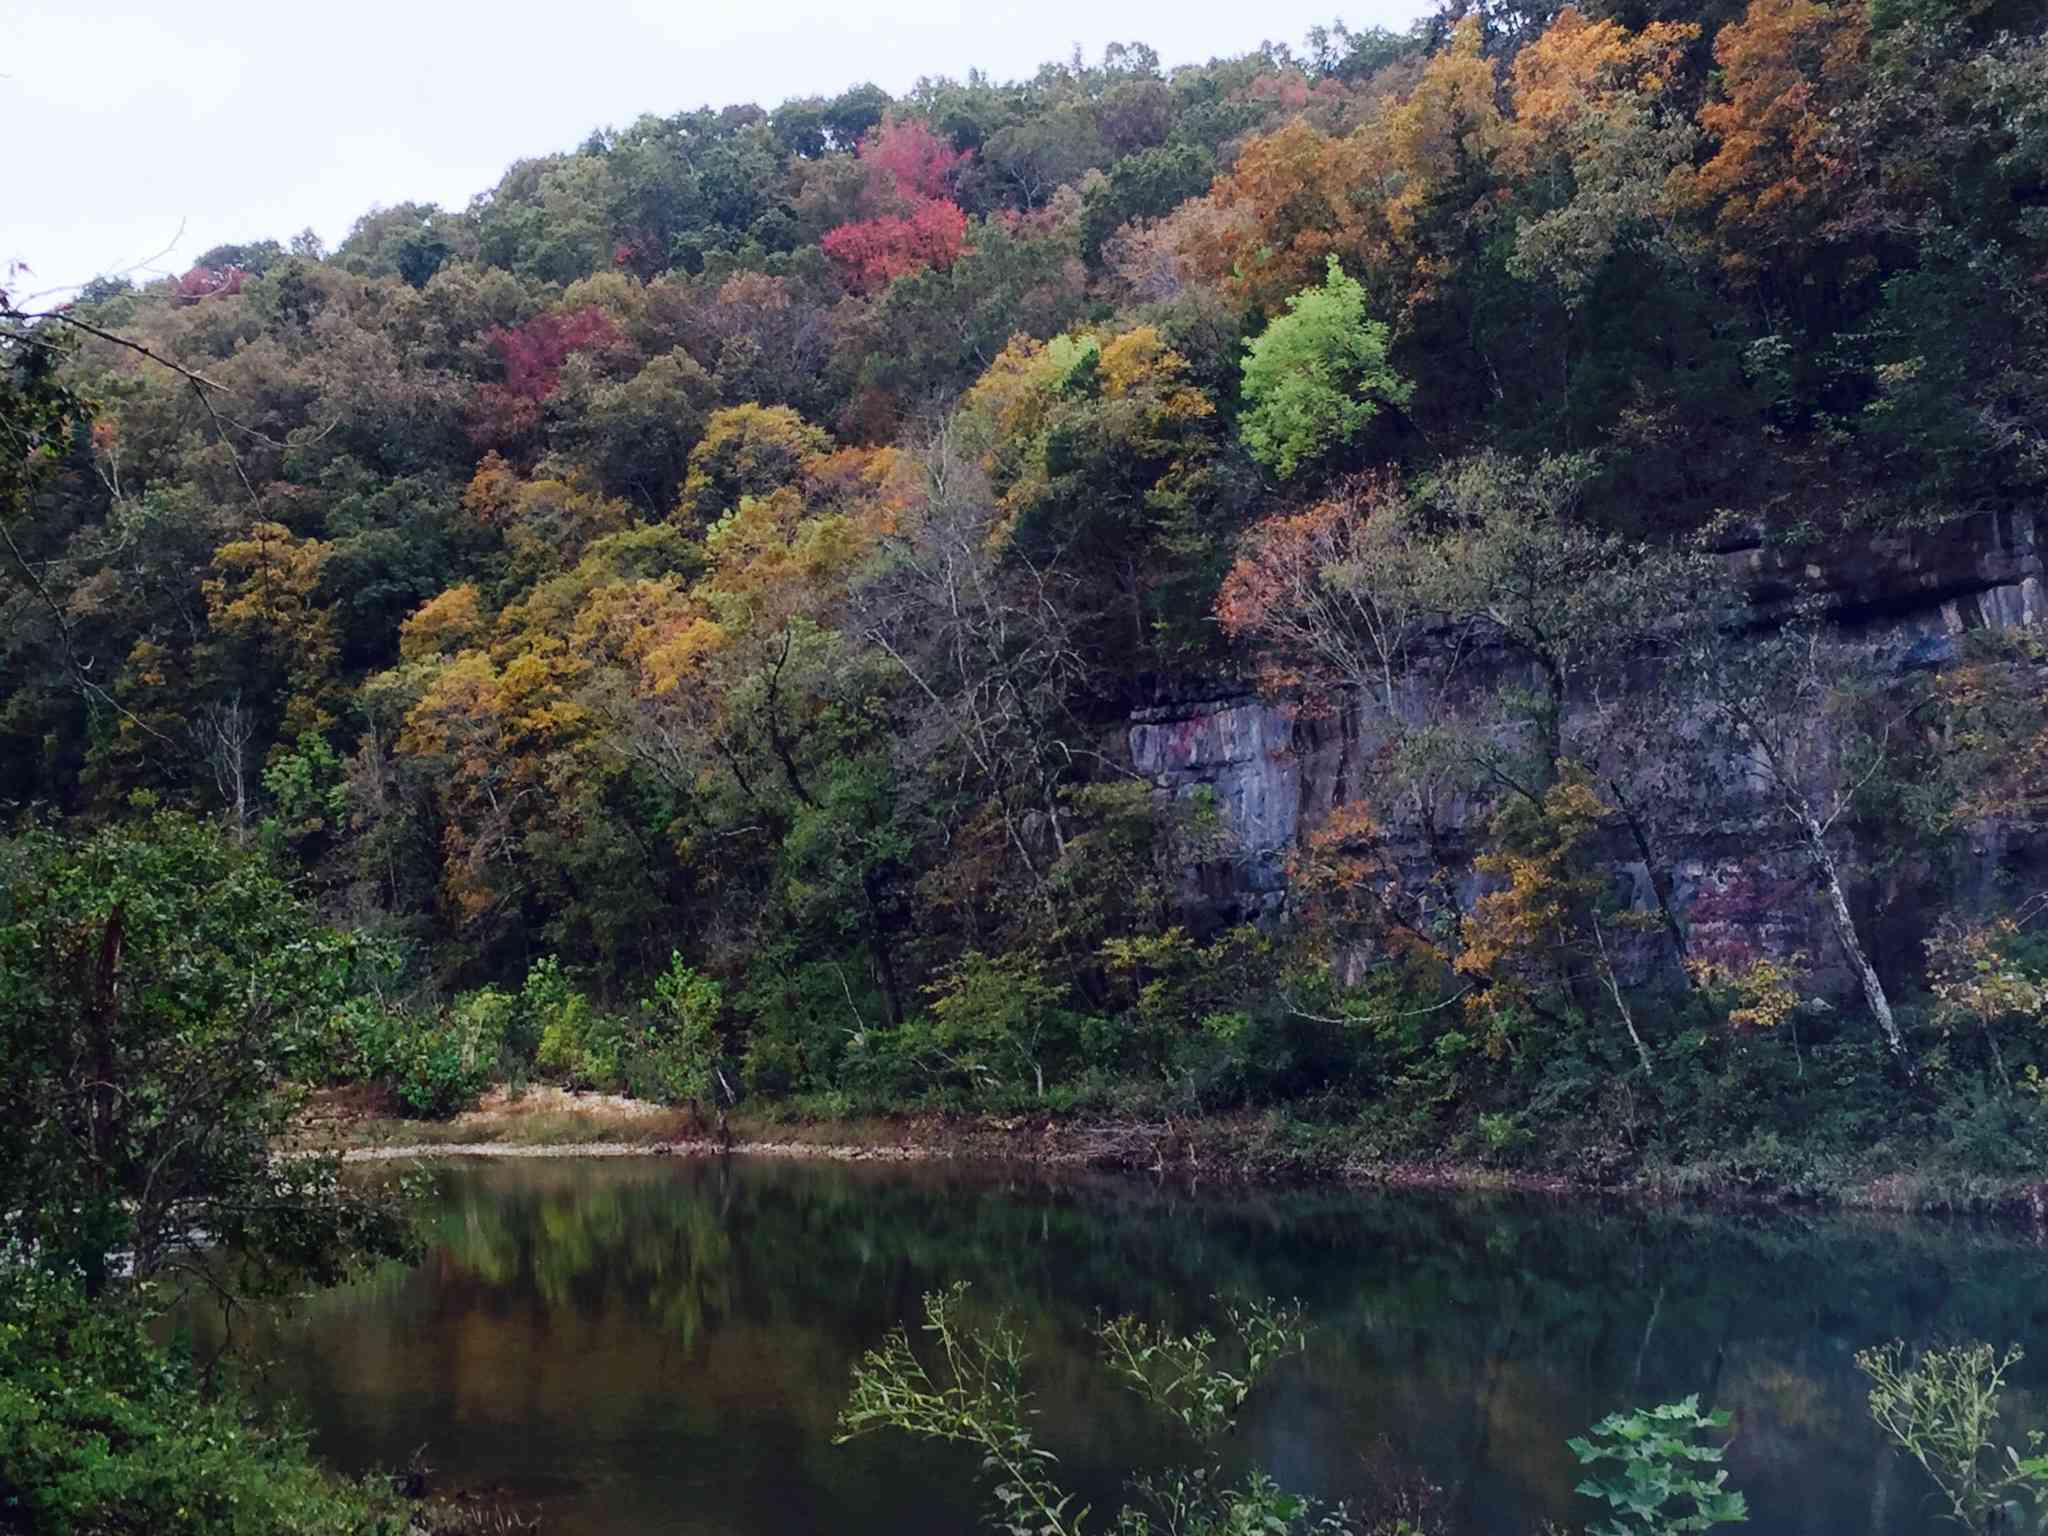 Forest of lush trees in fall color above a small pond at the North Fork Recreation Area in Mark Twain National Forest